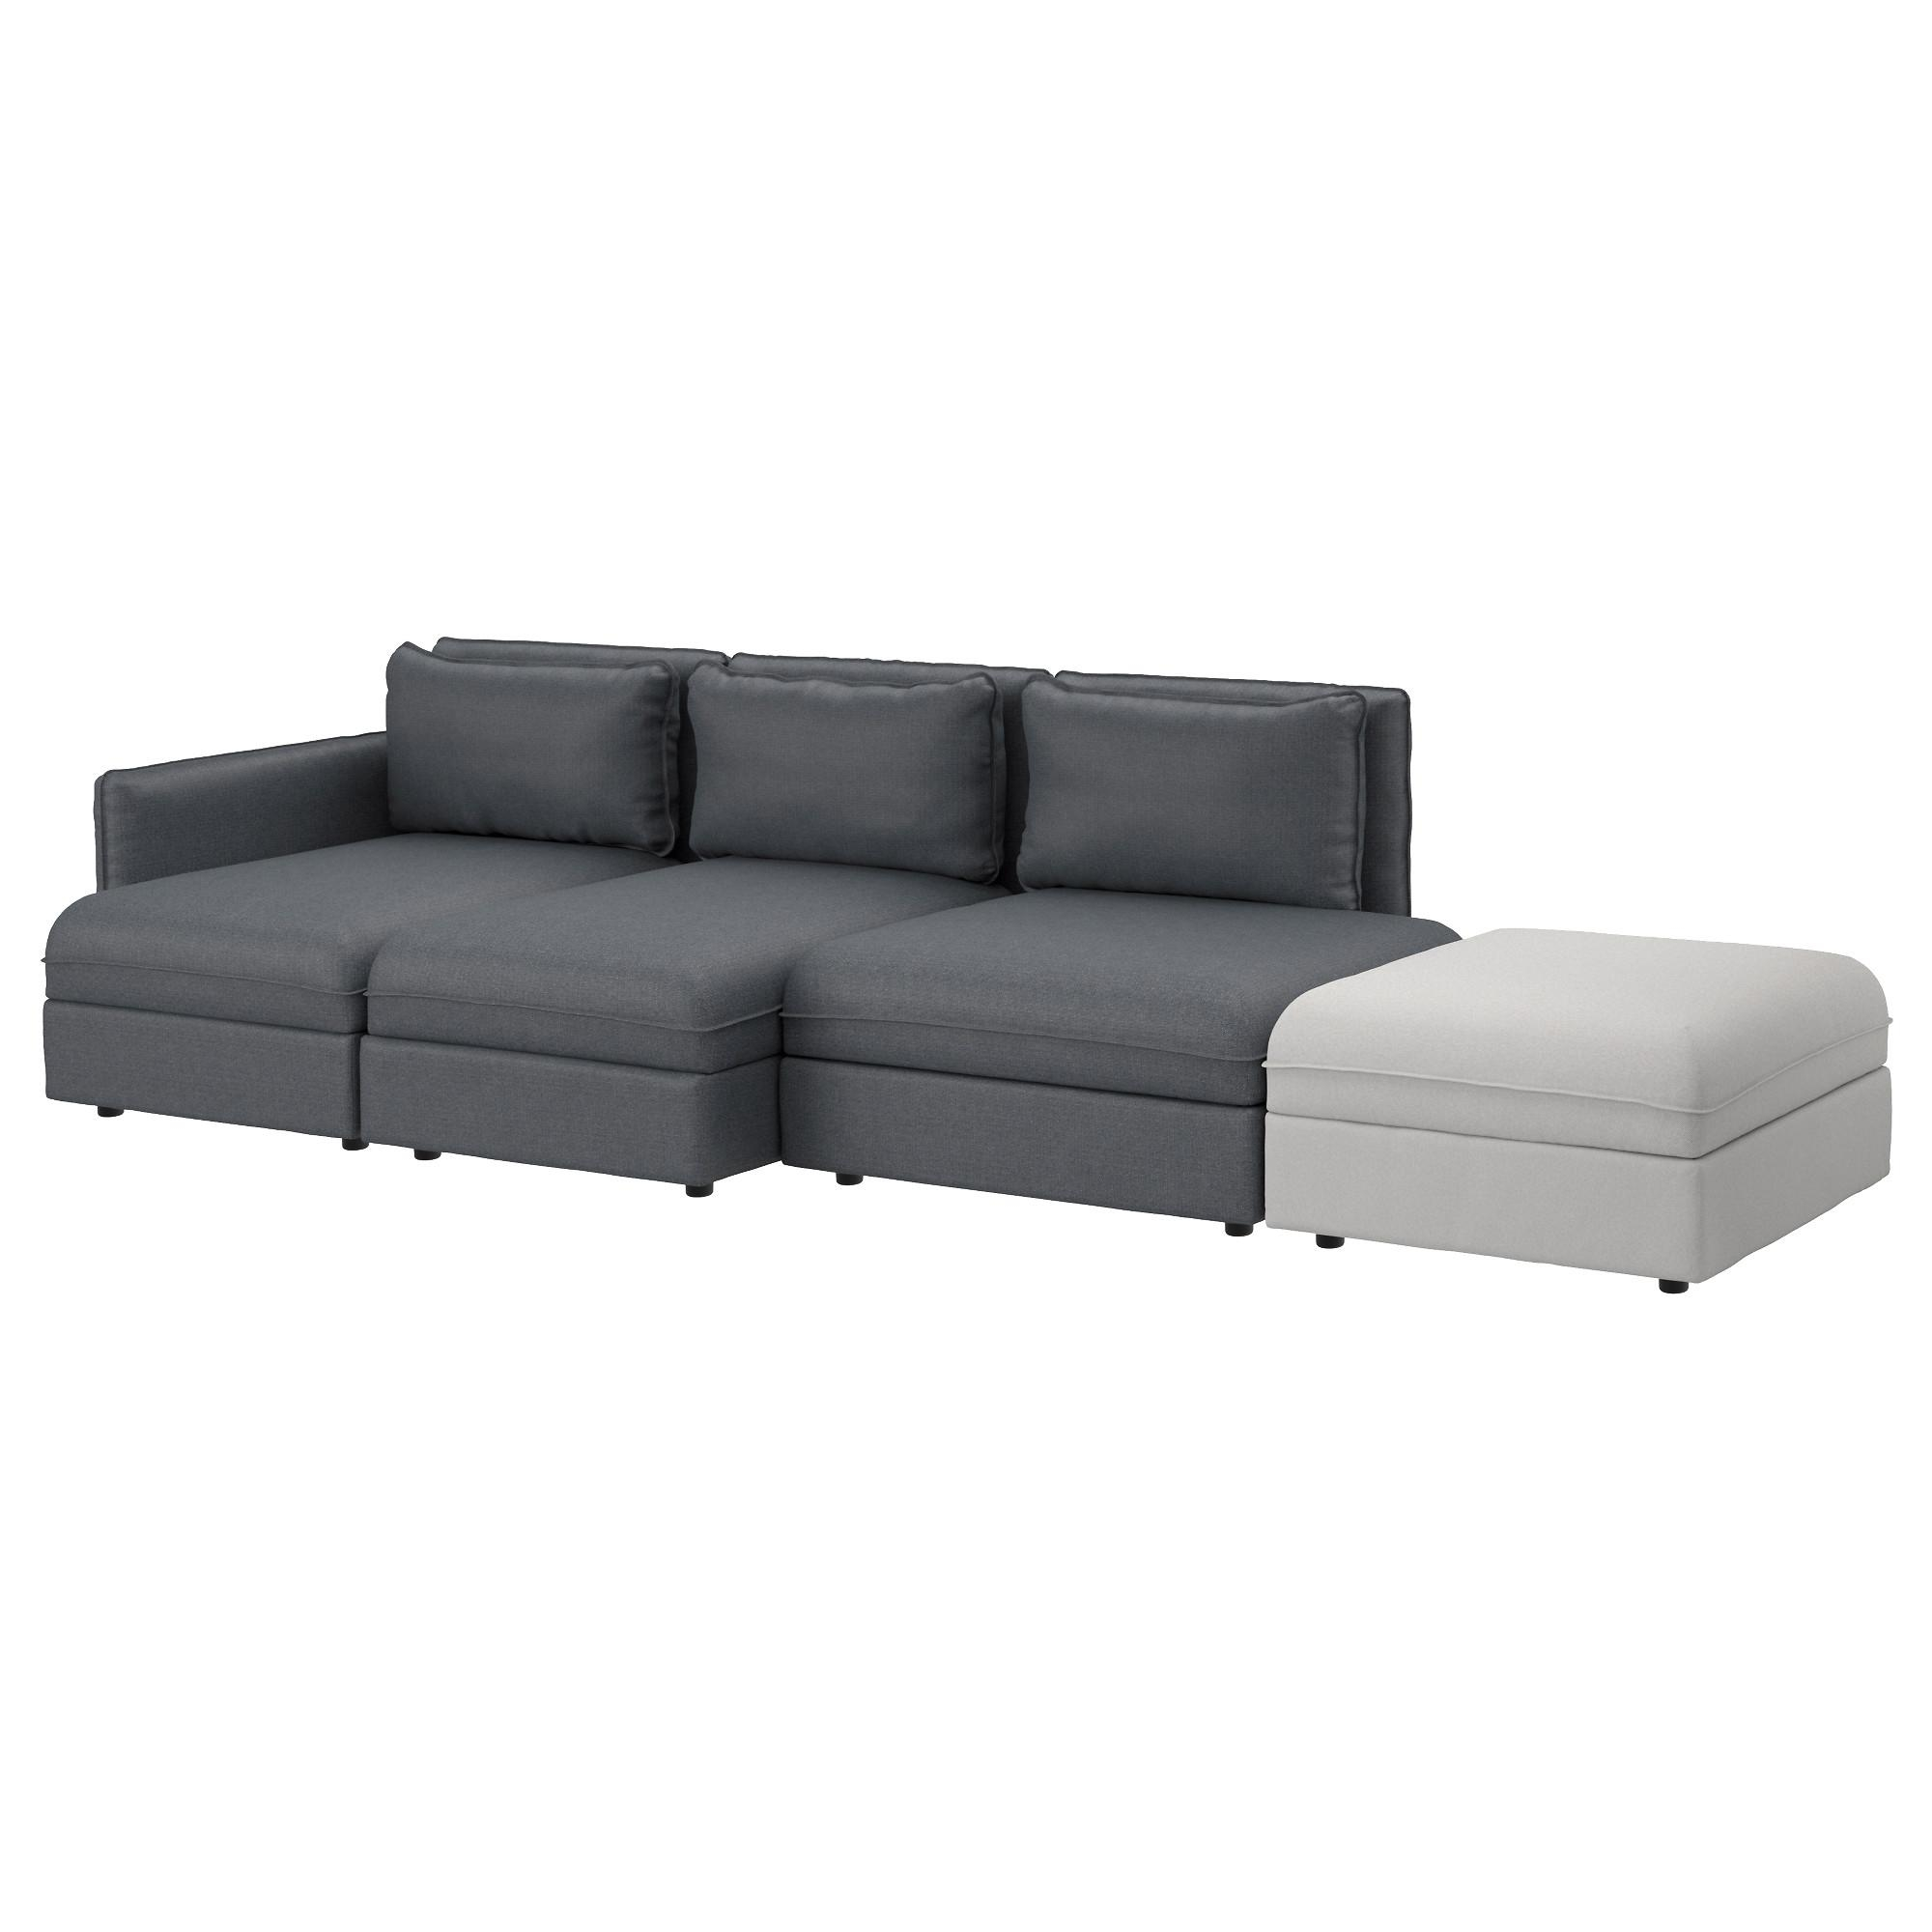 Sectional Sofas & Couches – Ikea With Charcoal Grey Leather Sofas (Image 14 of 20)